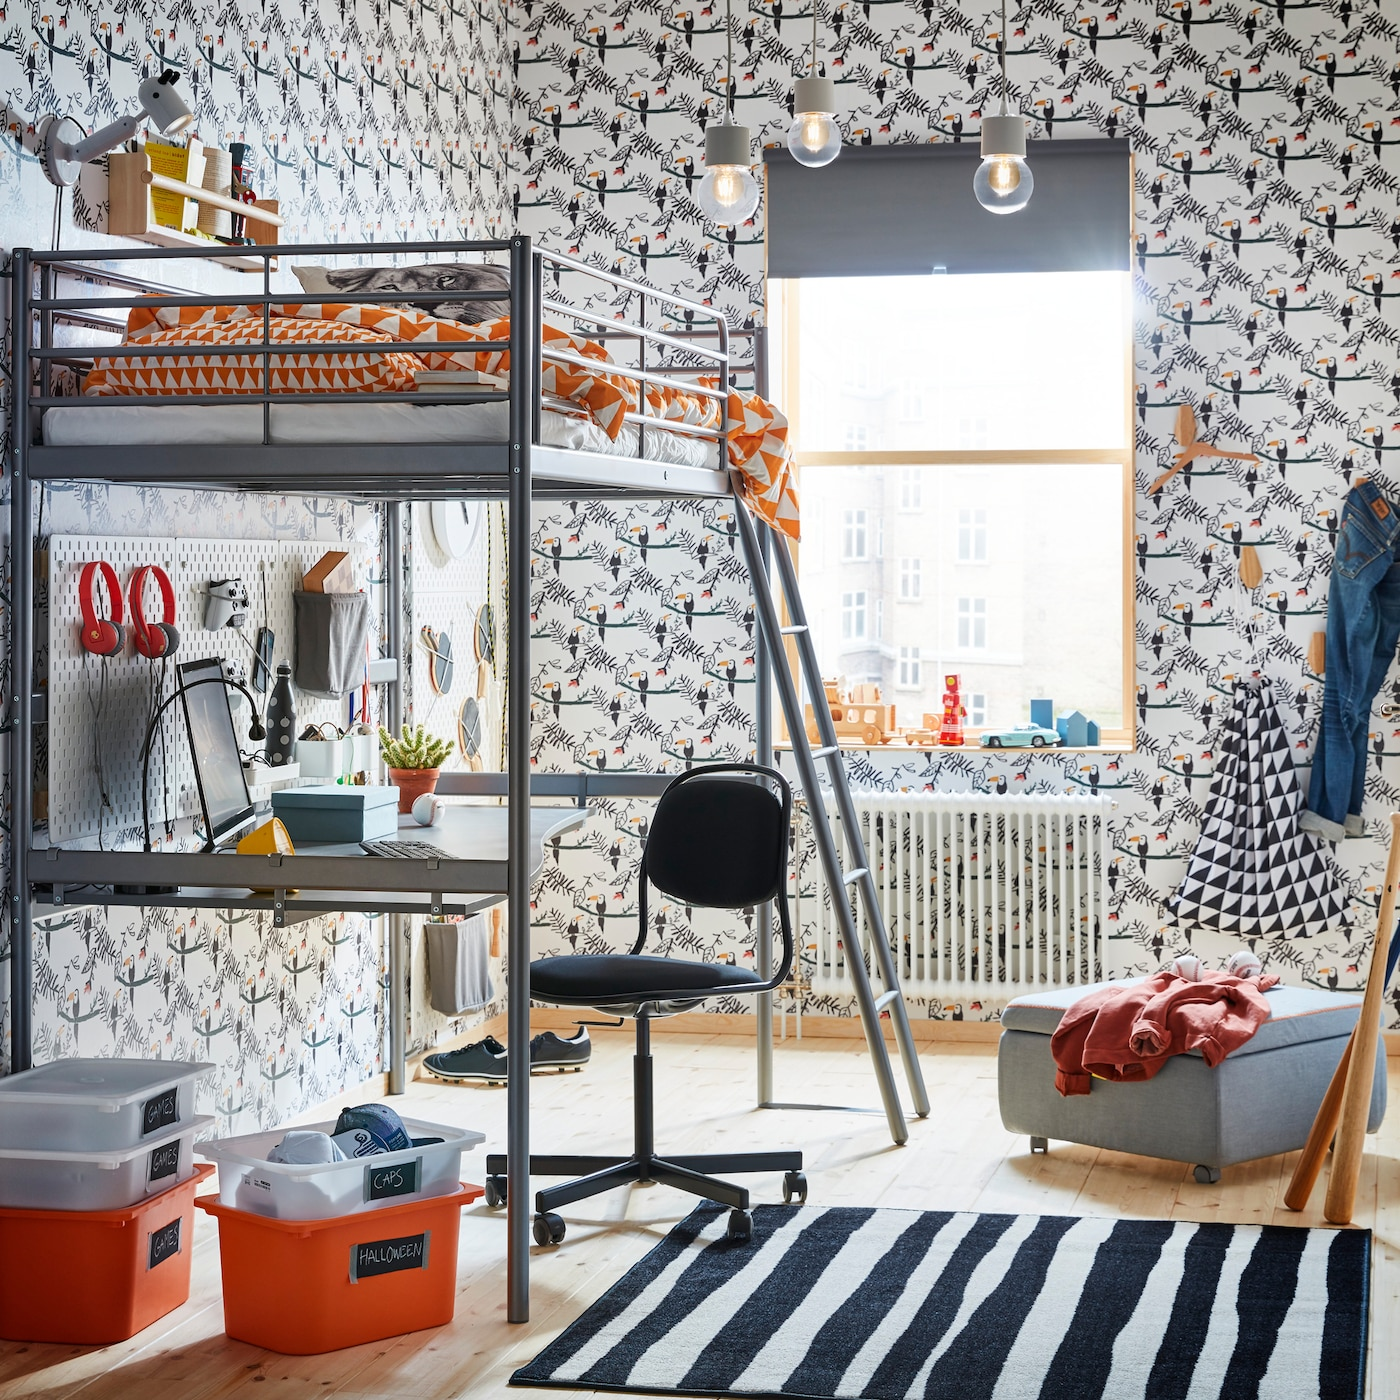 IKEA SVÄRTA silver steel loftbed comes with a sturdy desk on the bottom bunk: perfect for creating a gaming station for preteens and children.